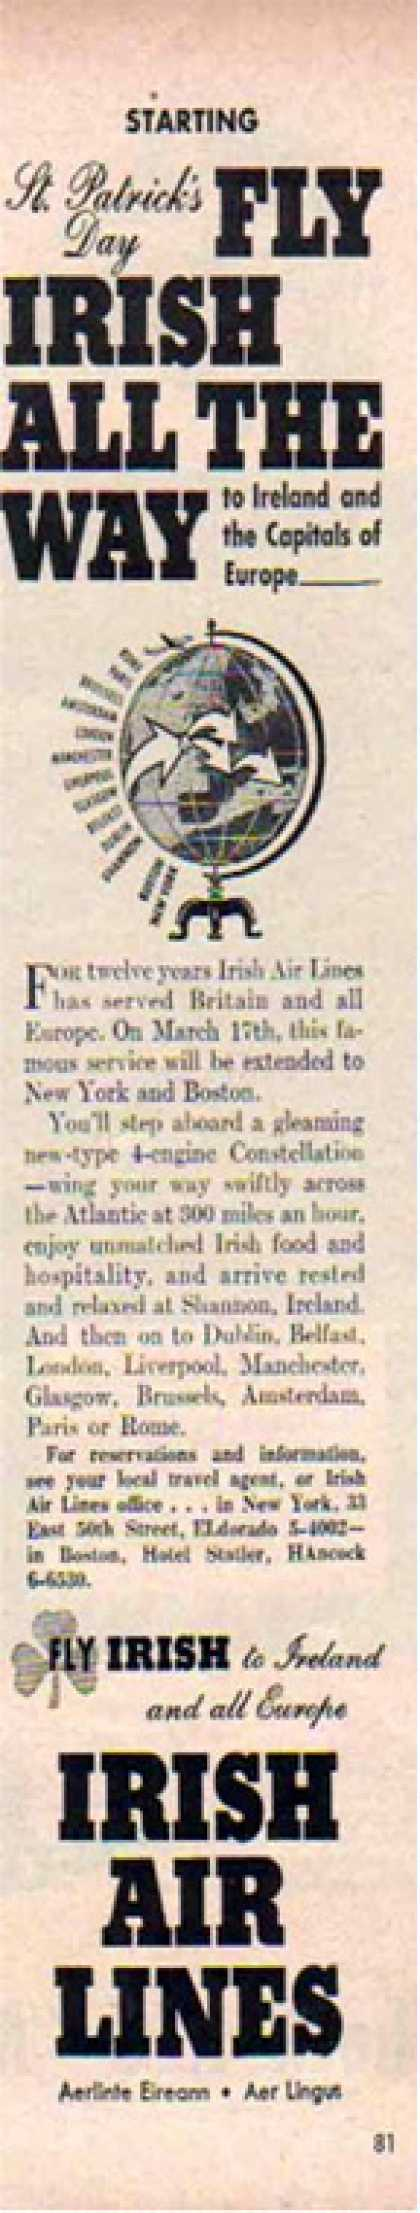 Irish Airlines – St Patrick's Day (1948)